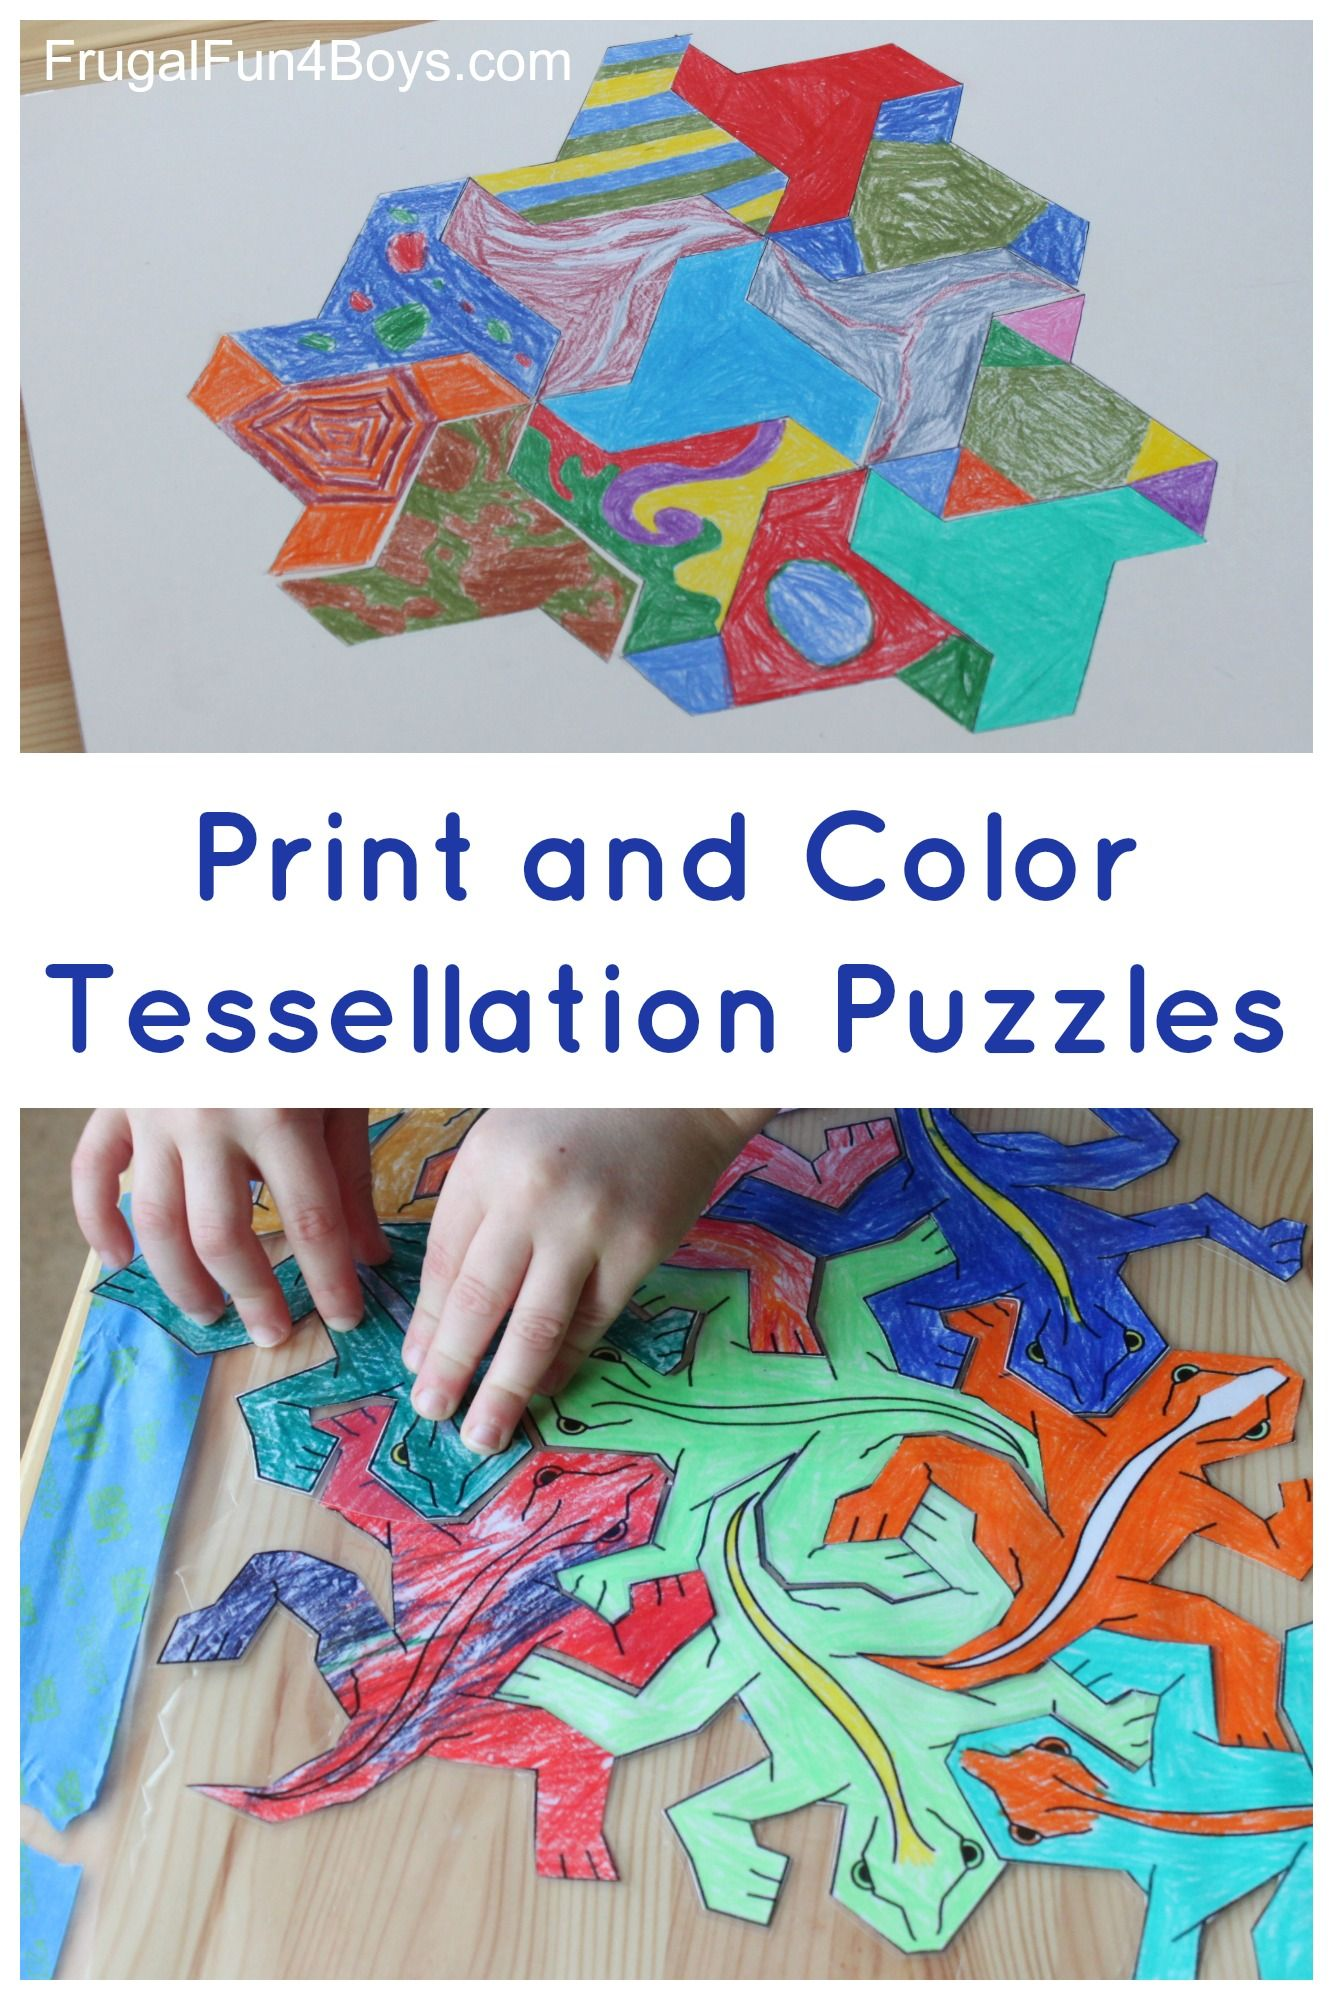 Print and Color Tessellation Puzzles for Kids | Math & Geometry ...